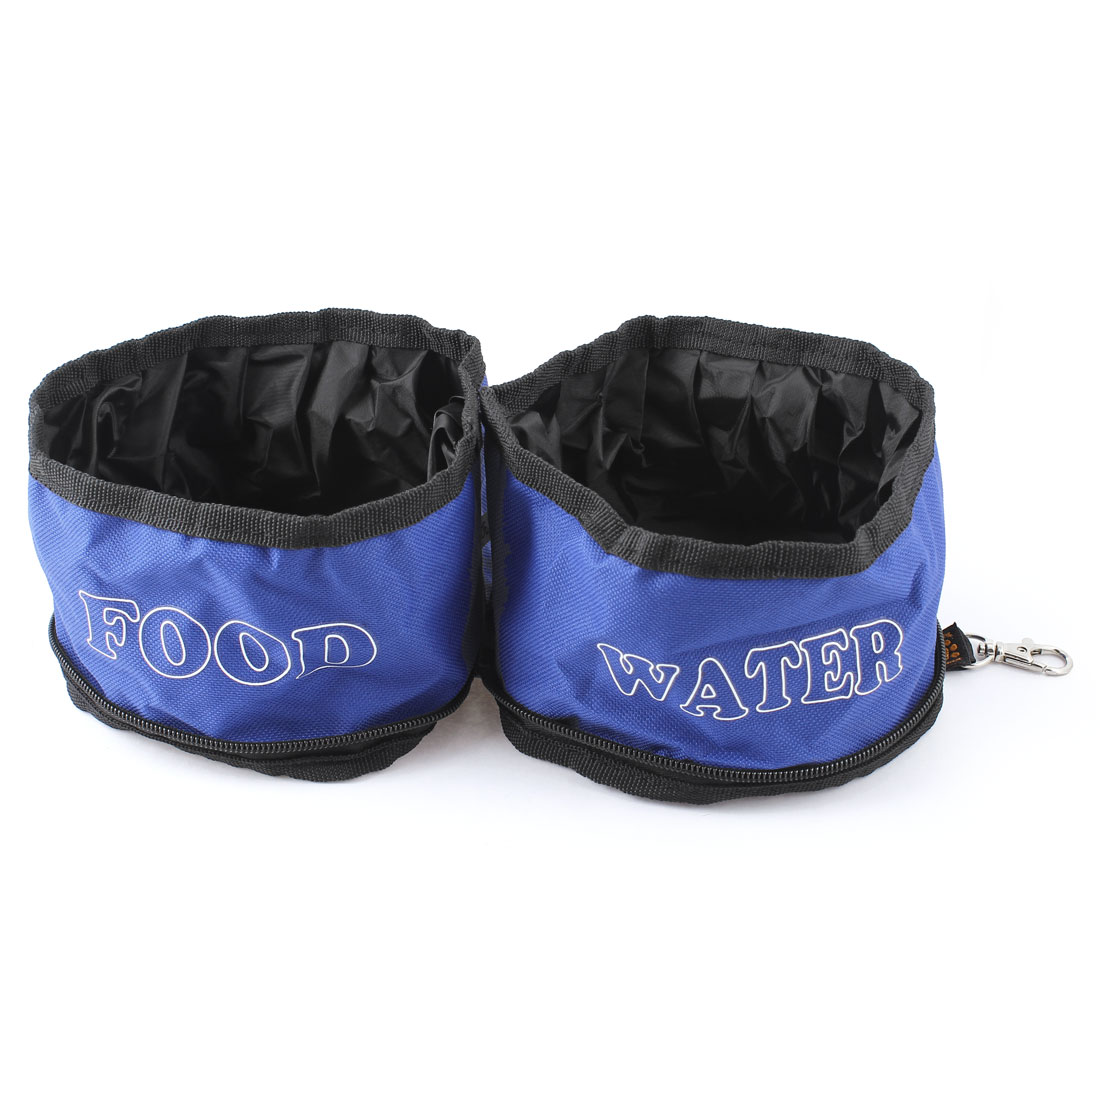 Traveling Camping Hiking Travel Blue Black Letter Pattern Double Food Water Bowl for Pet Doggie Cat